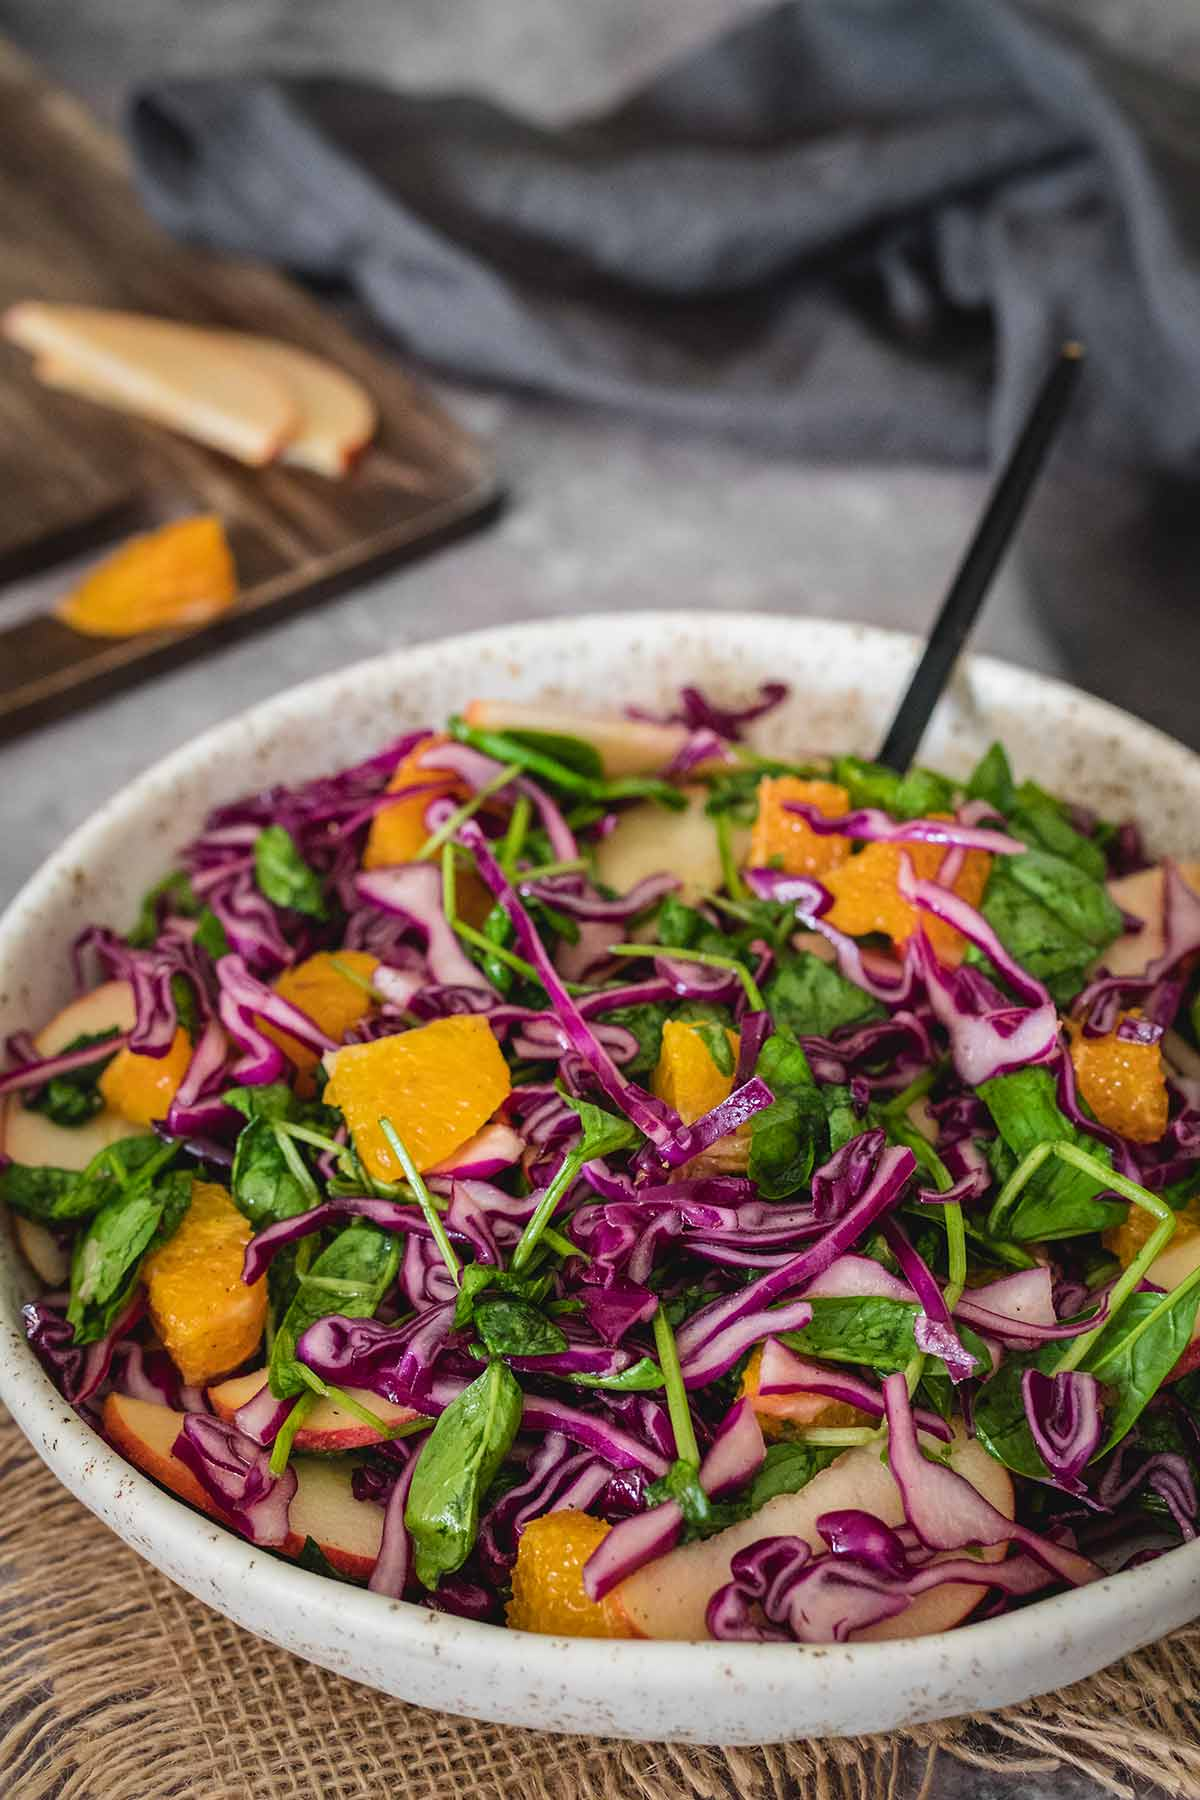 Red cabbage salad with orange, apple and spinach